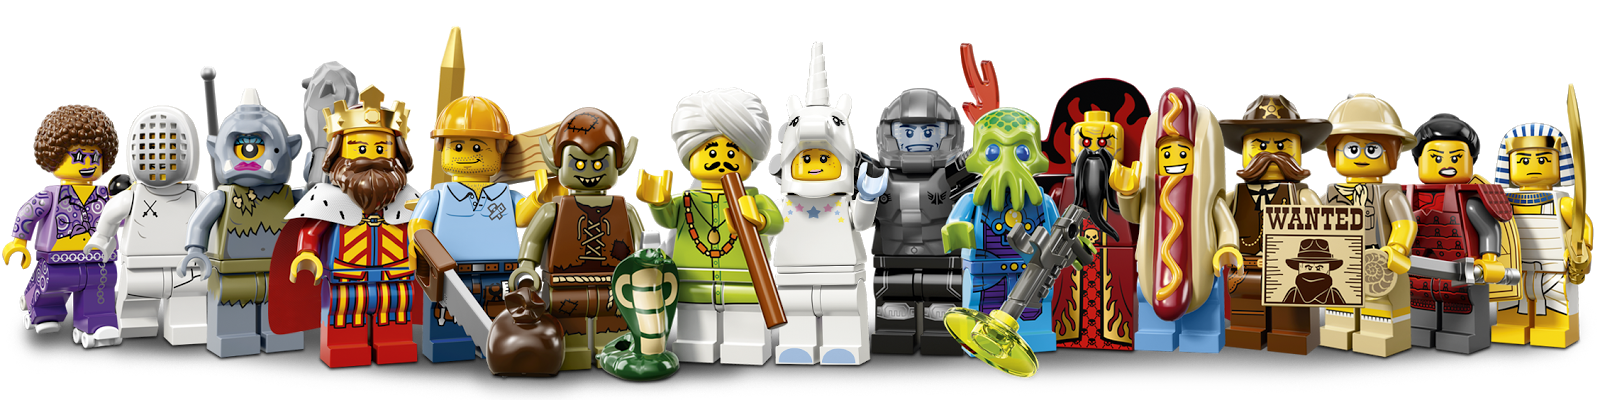 Lego Minifigures 13 Seri Touch Guide I M Secho S